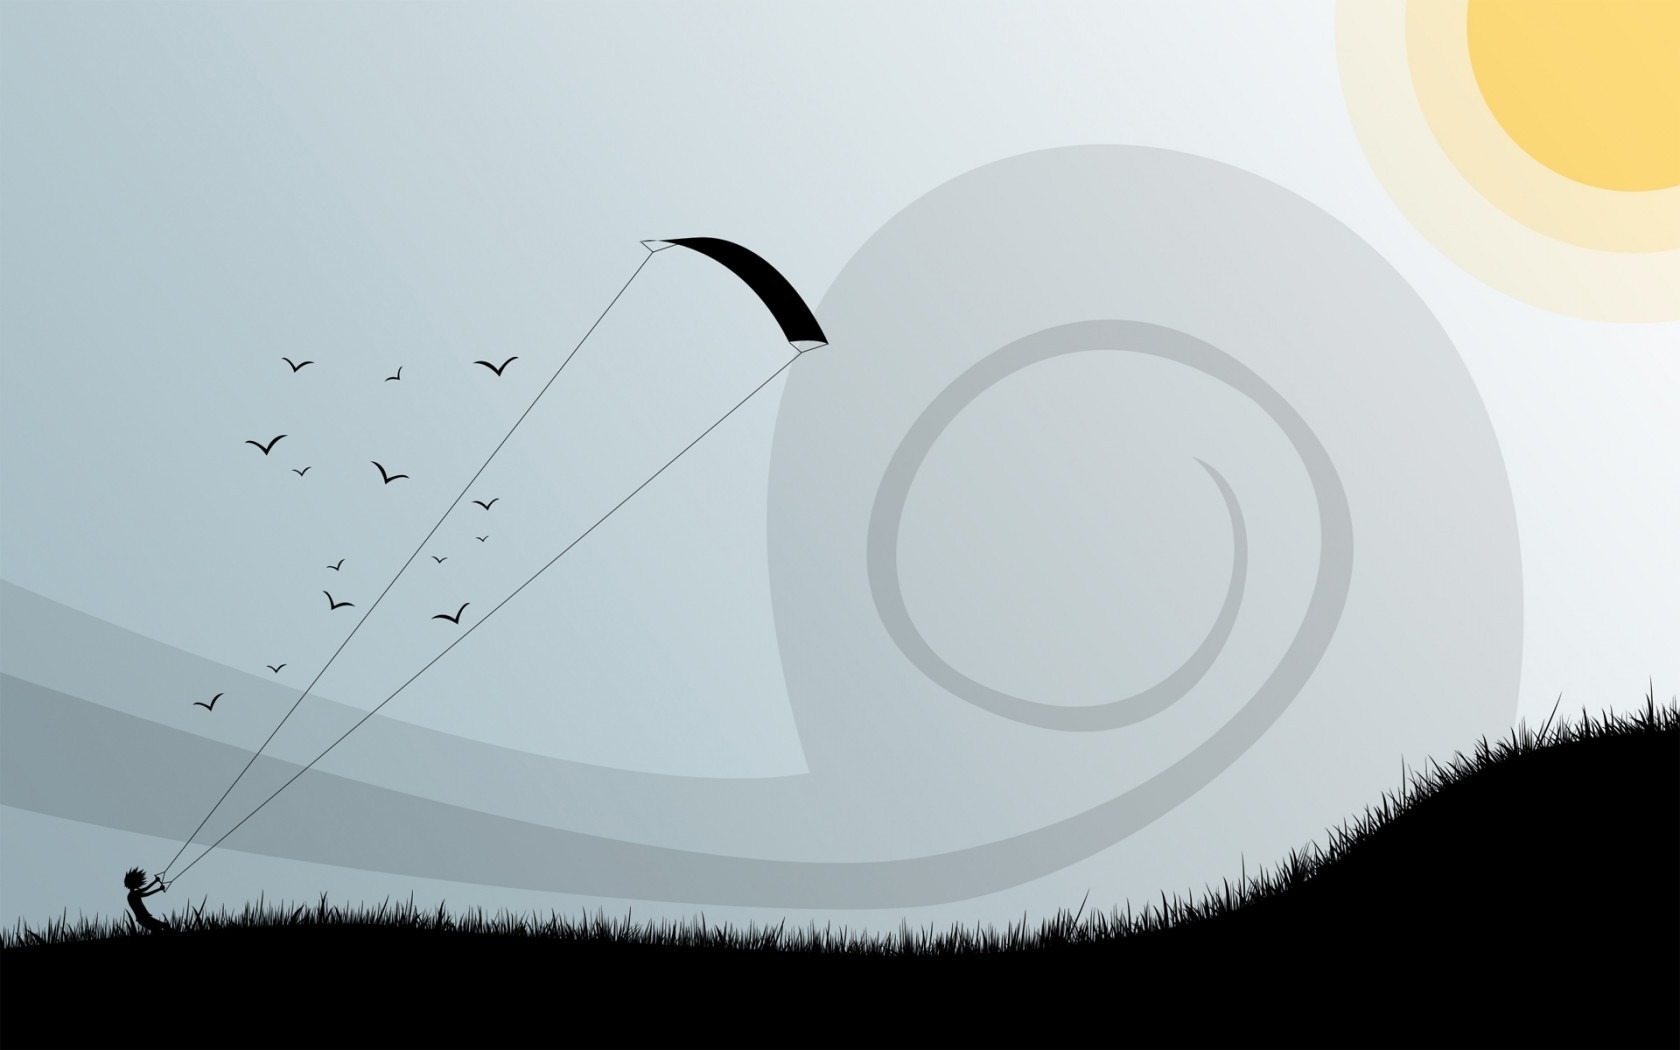 sun minimalistic Birds vectors HD Wallpaper